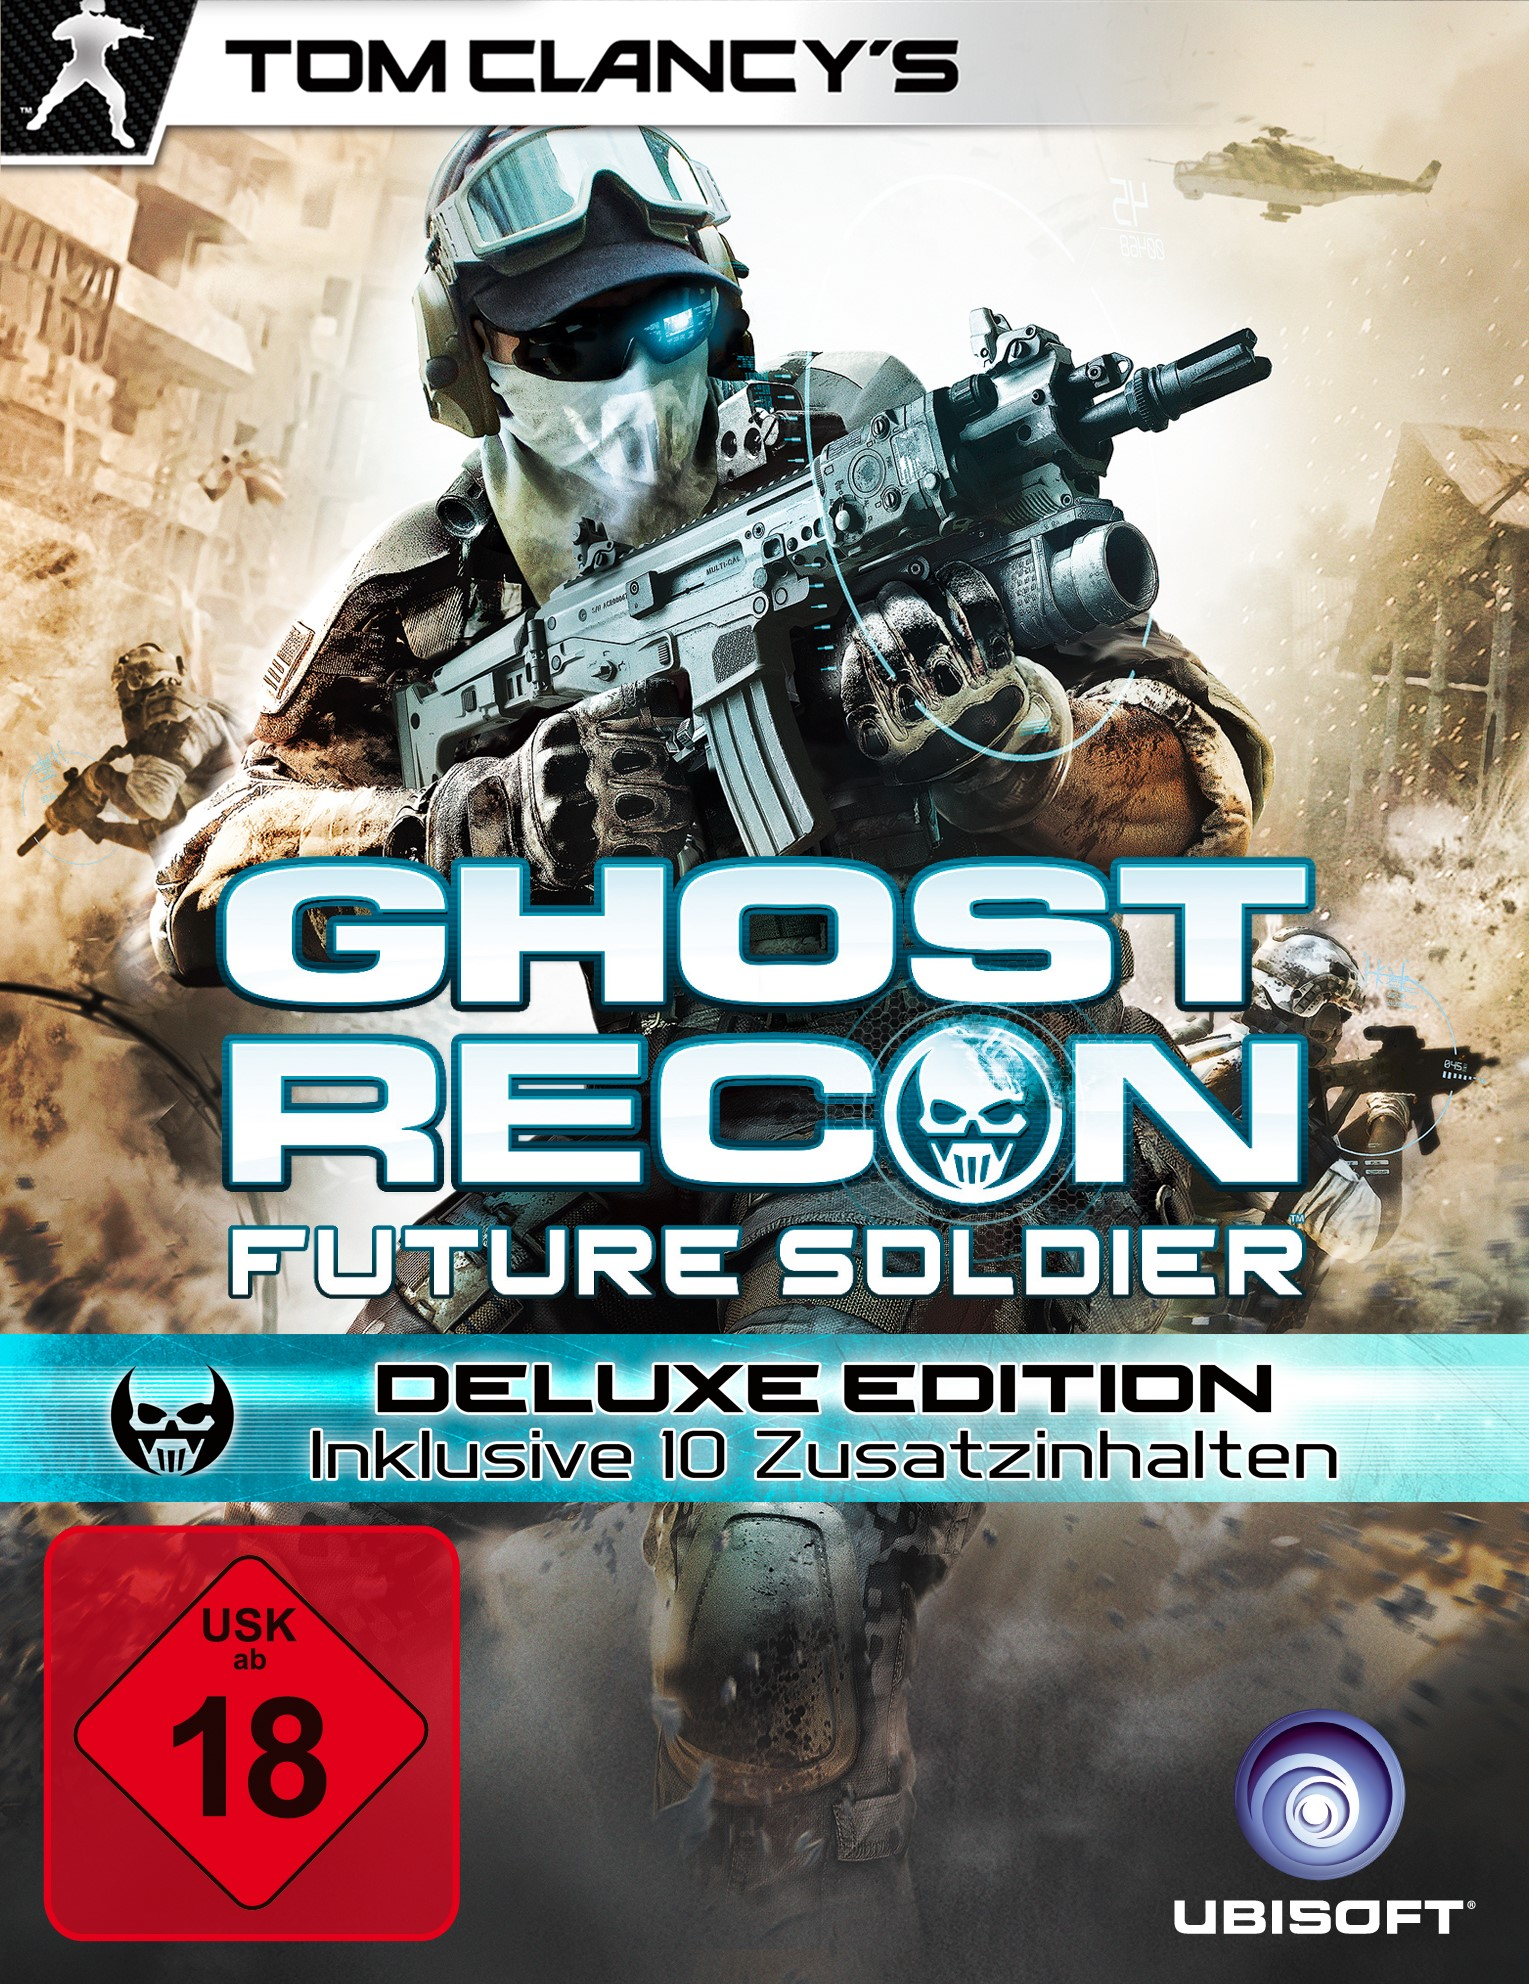 Tom Clancy\'s Ghost Recon: Future Soldier - Deluxe Edition [PC Code - Uplay]